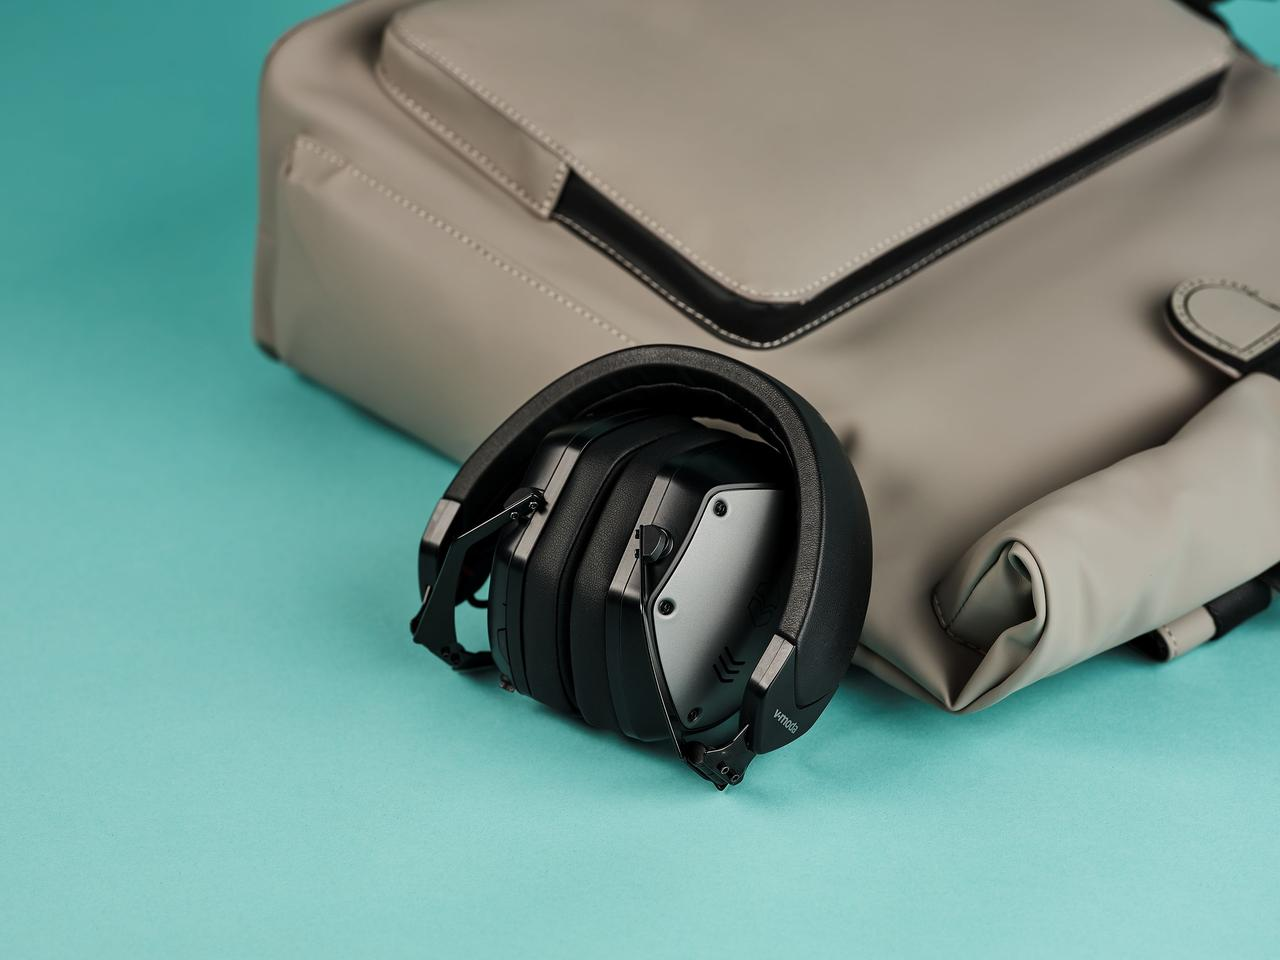 The M-200 ANC headphones feature a flexible hinge that allows them to collapse down for transport